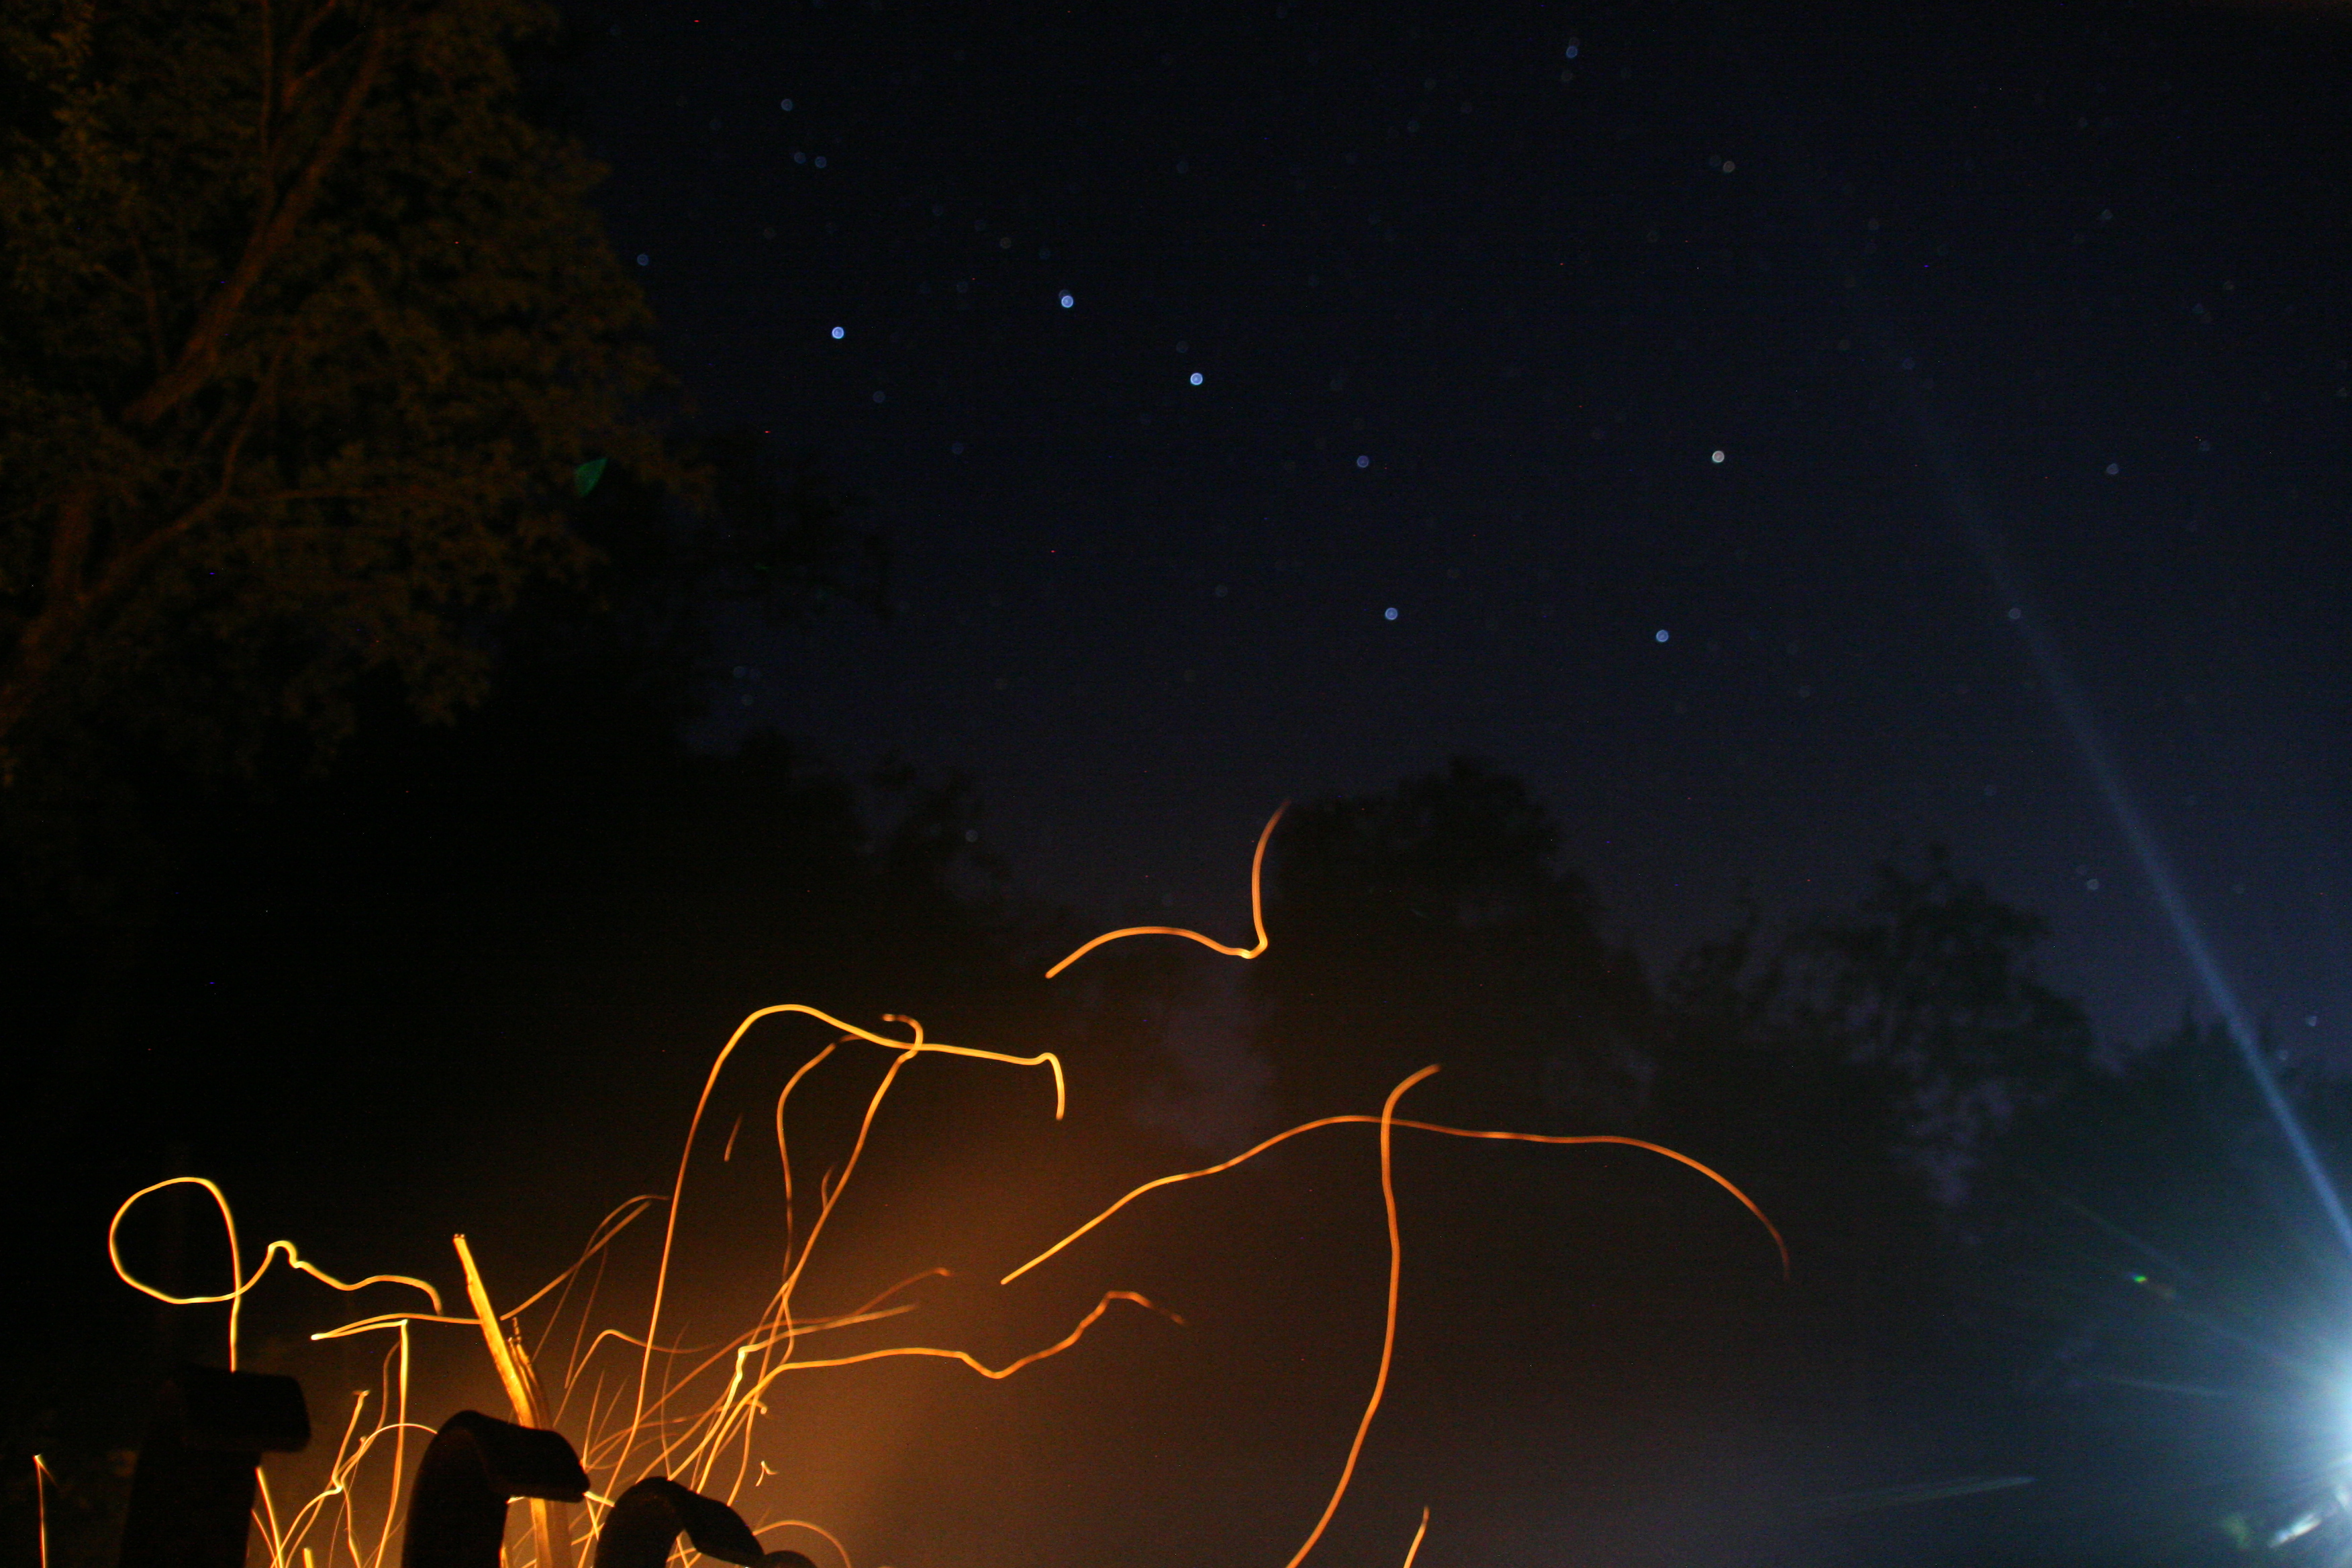 The Plough and campfire spark trails over The Exmoor Centre